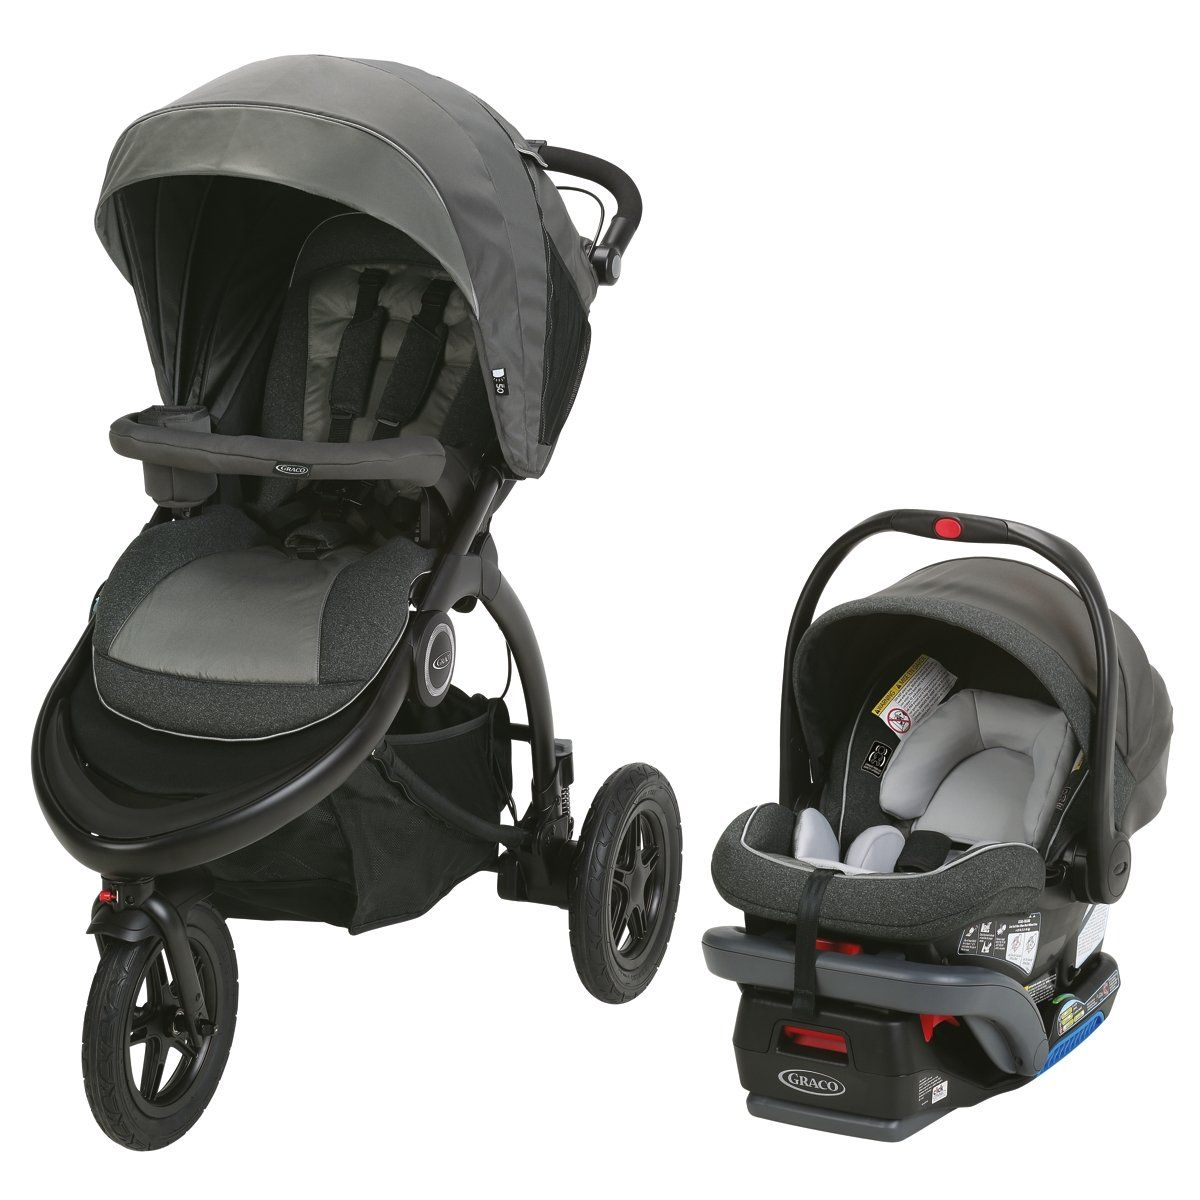 TrailRider Jogger Travel System Tenley Travel system